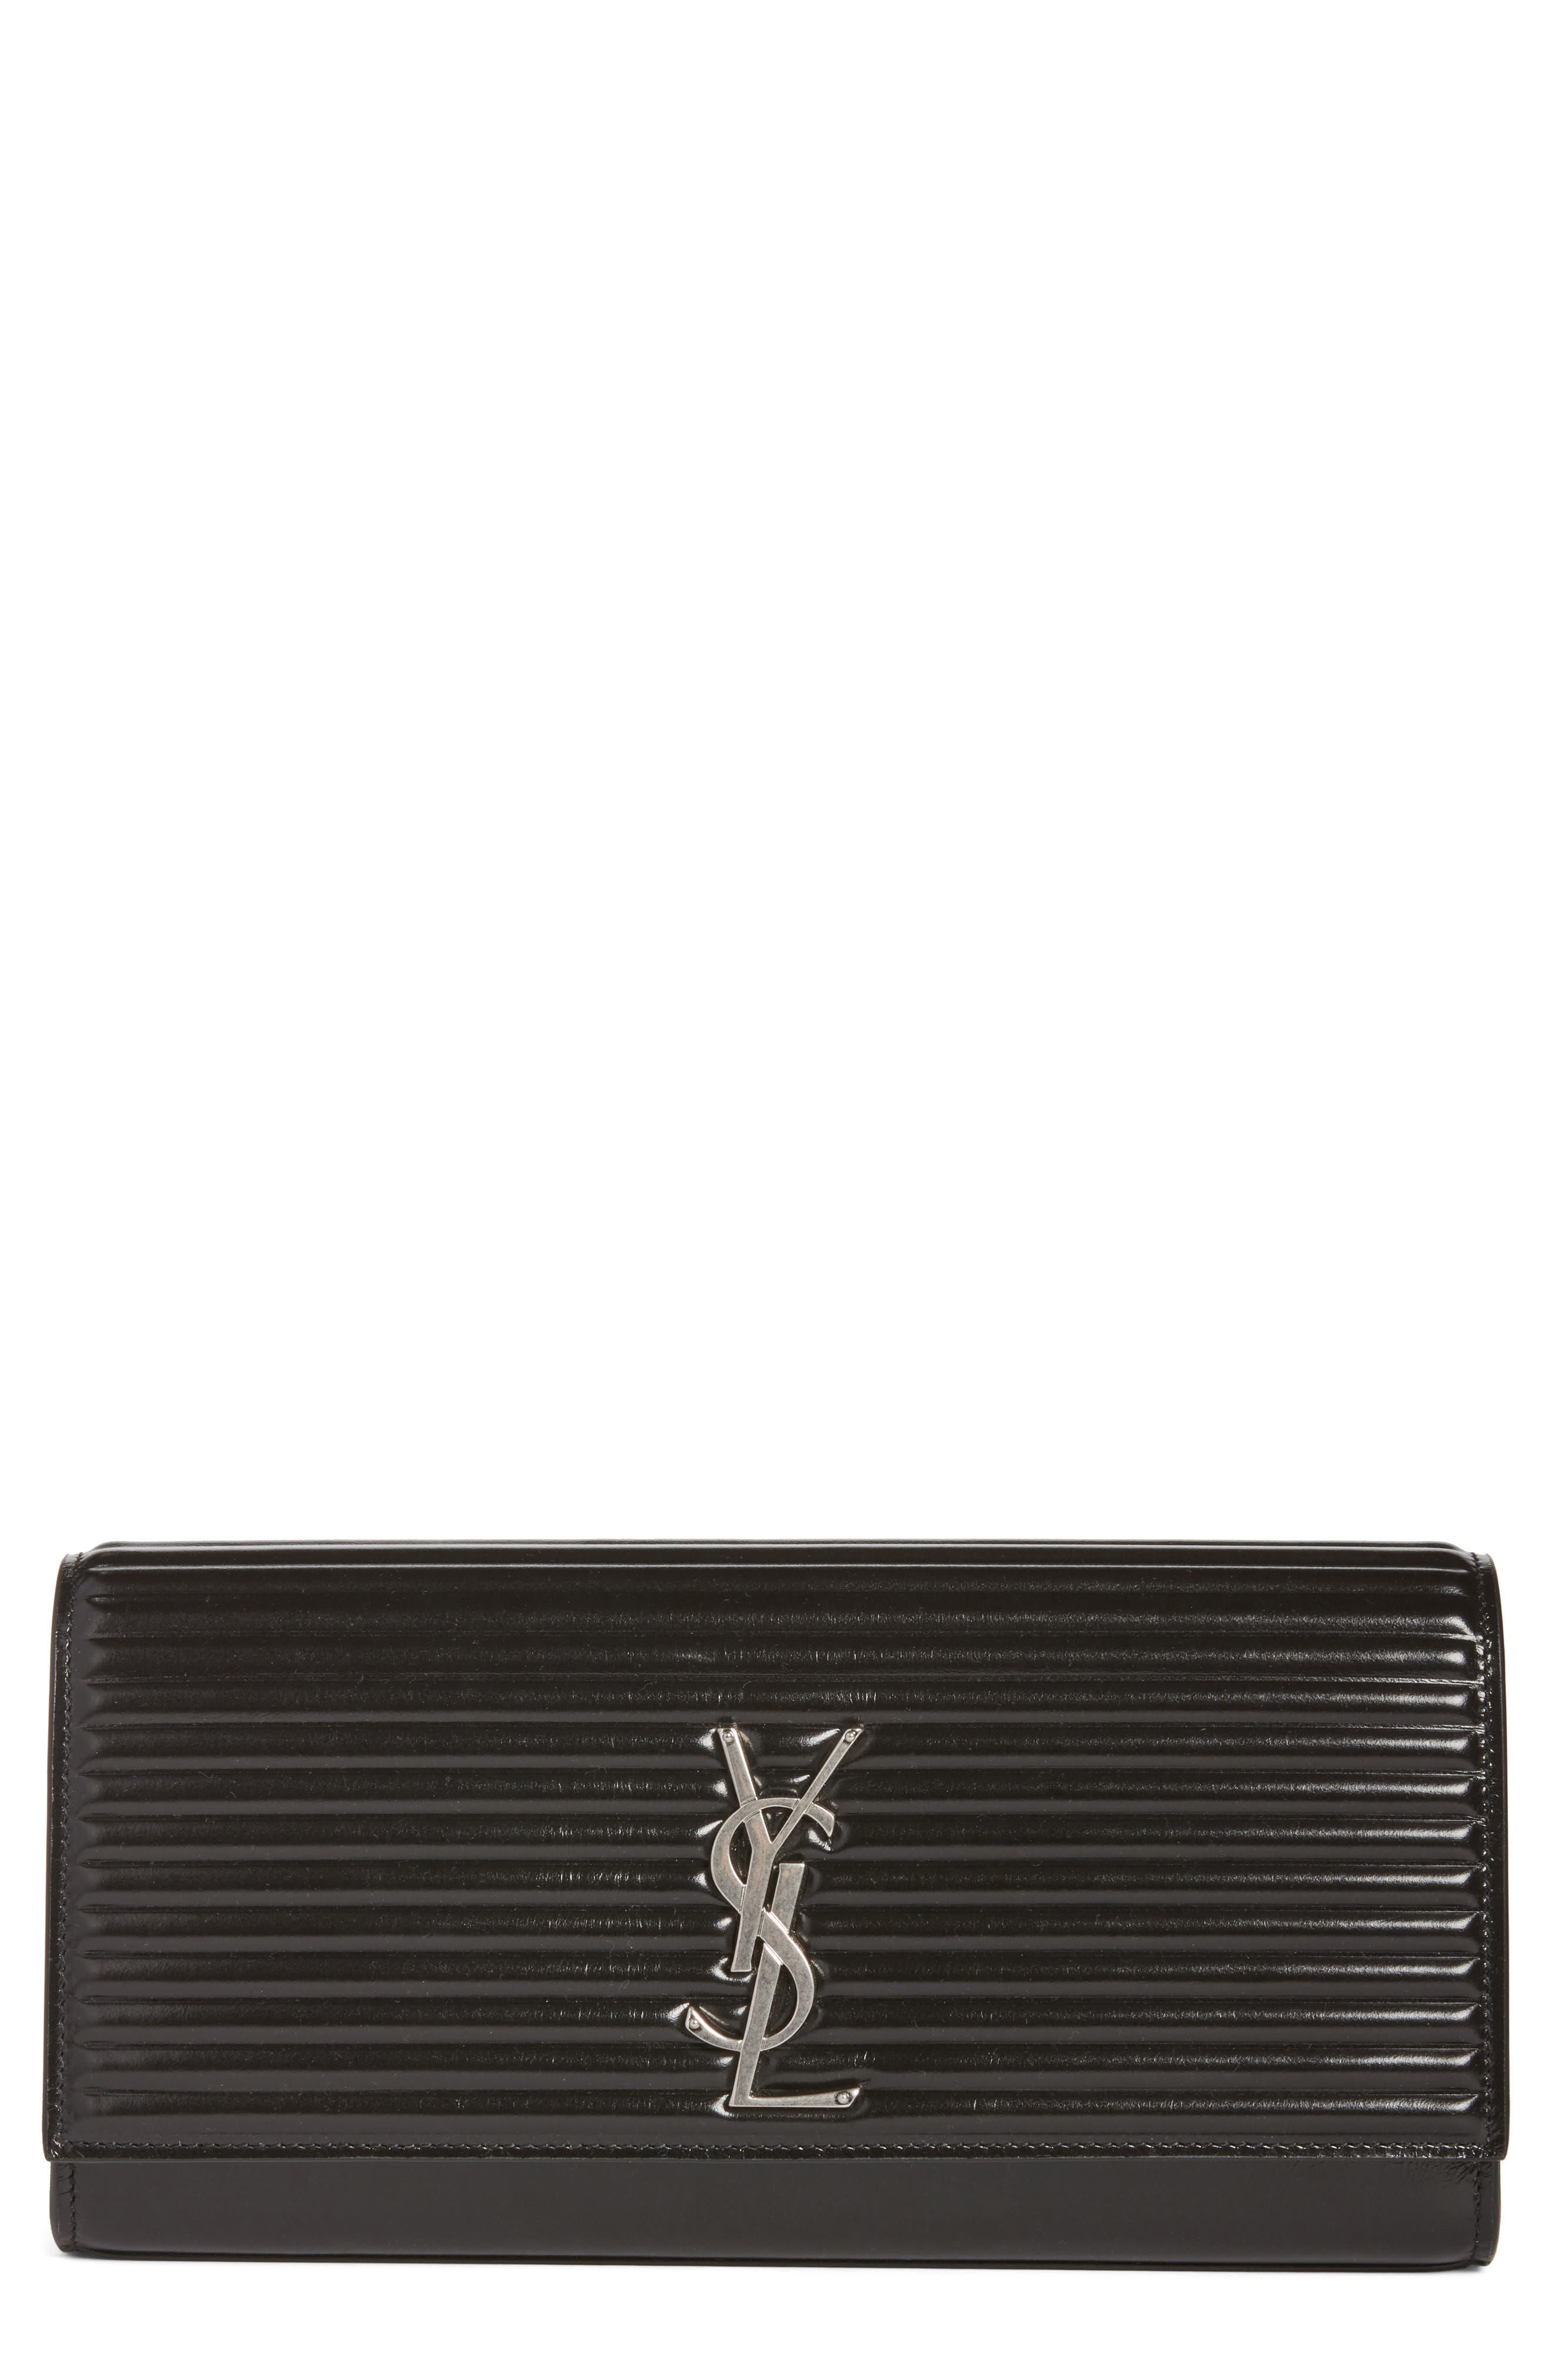 Saint Laurent Kate Opium Leather Clutch